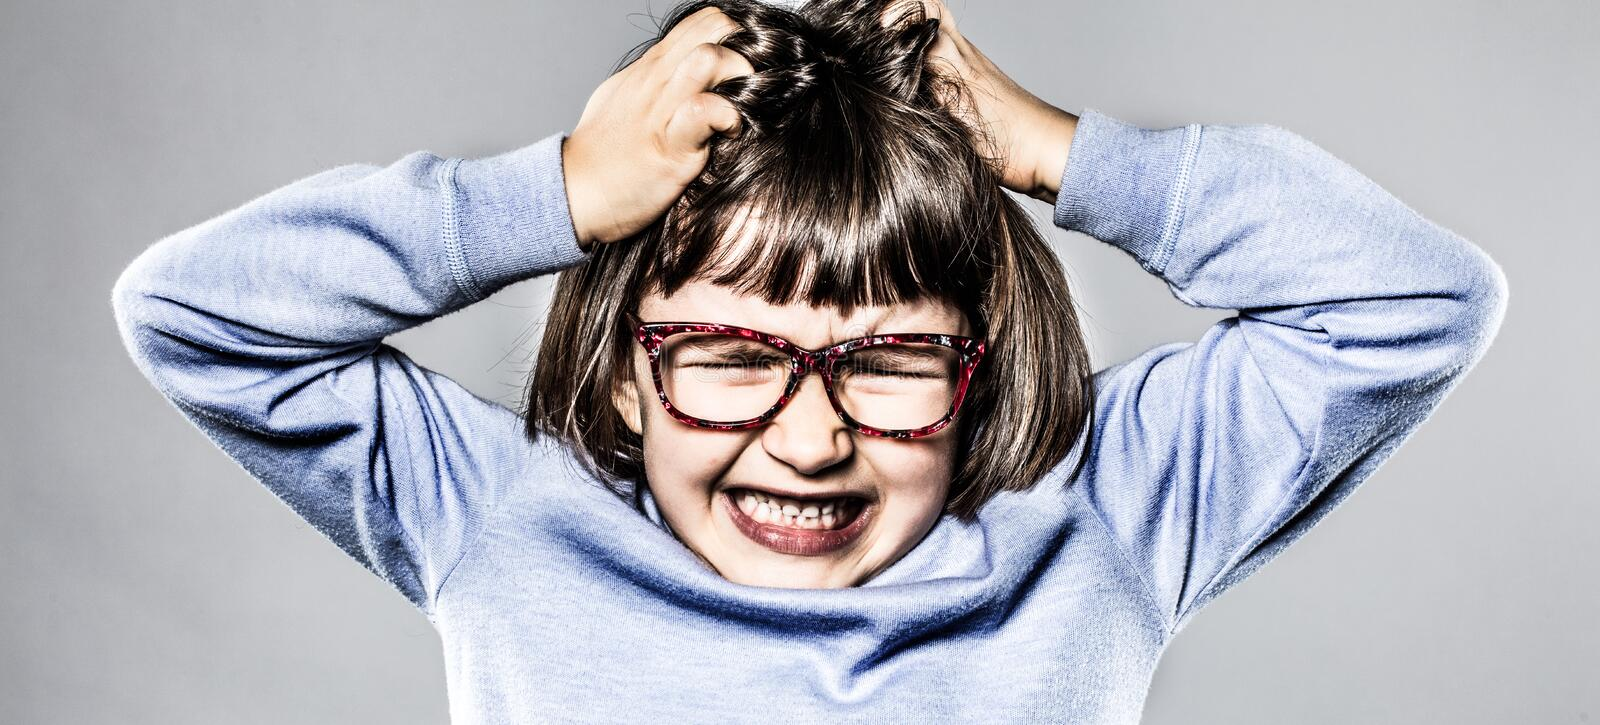 Furious kid having tantrum, scratching head for anger and frustration royalty free stock photography